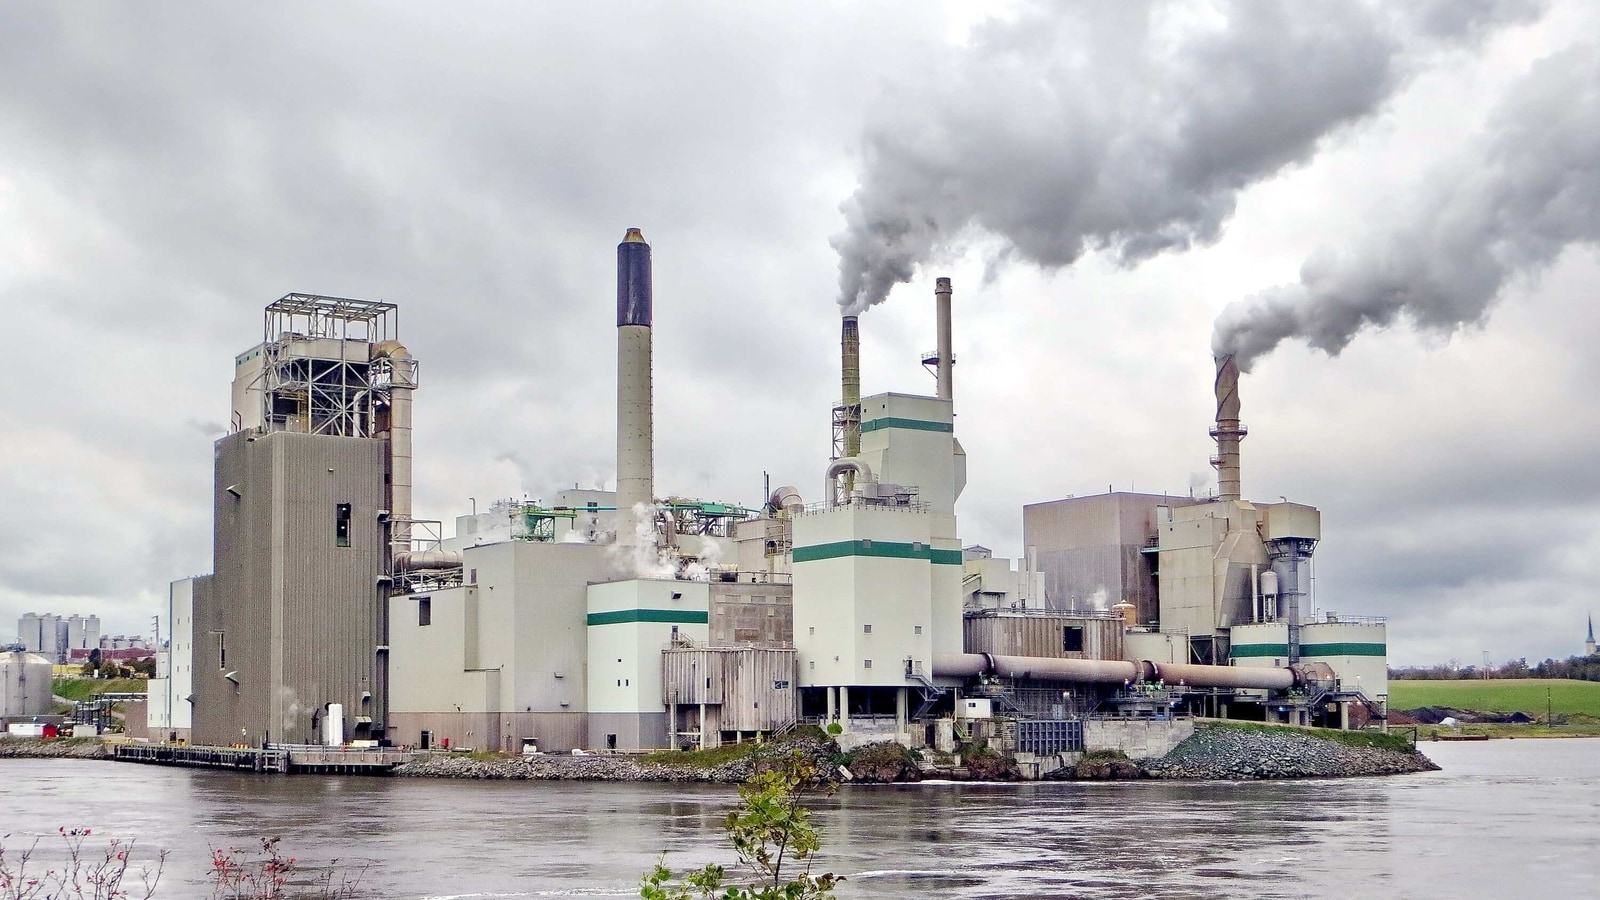 Scientists warn of rebound after record 7% fall in global emissions